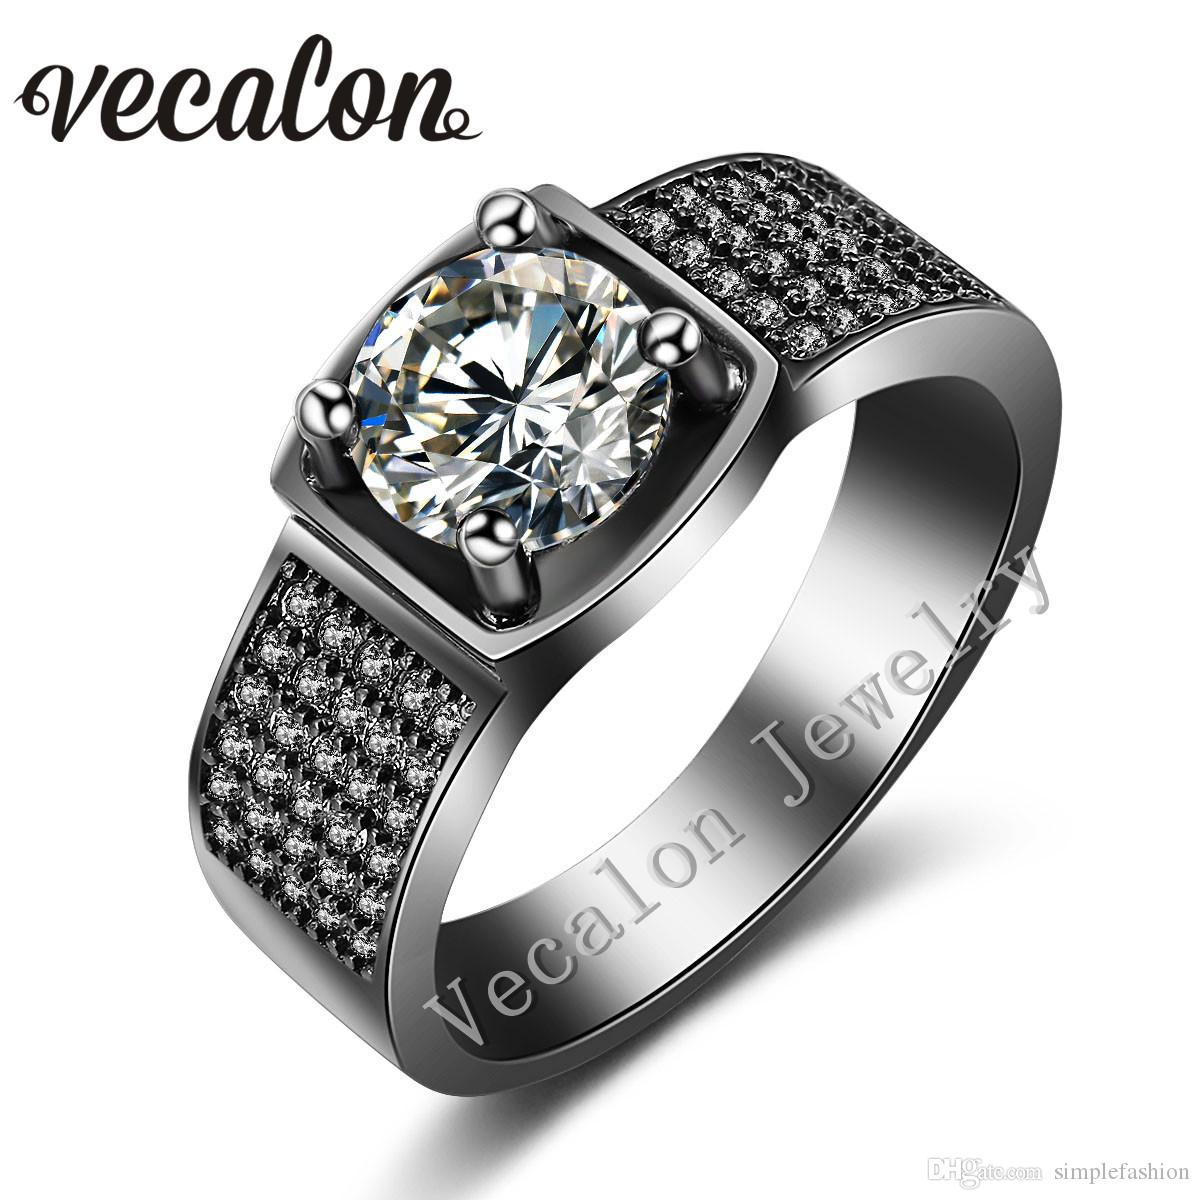 2017 vecalon prong set solitaire 3ct simulated diamond cz wedding